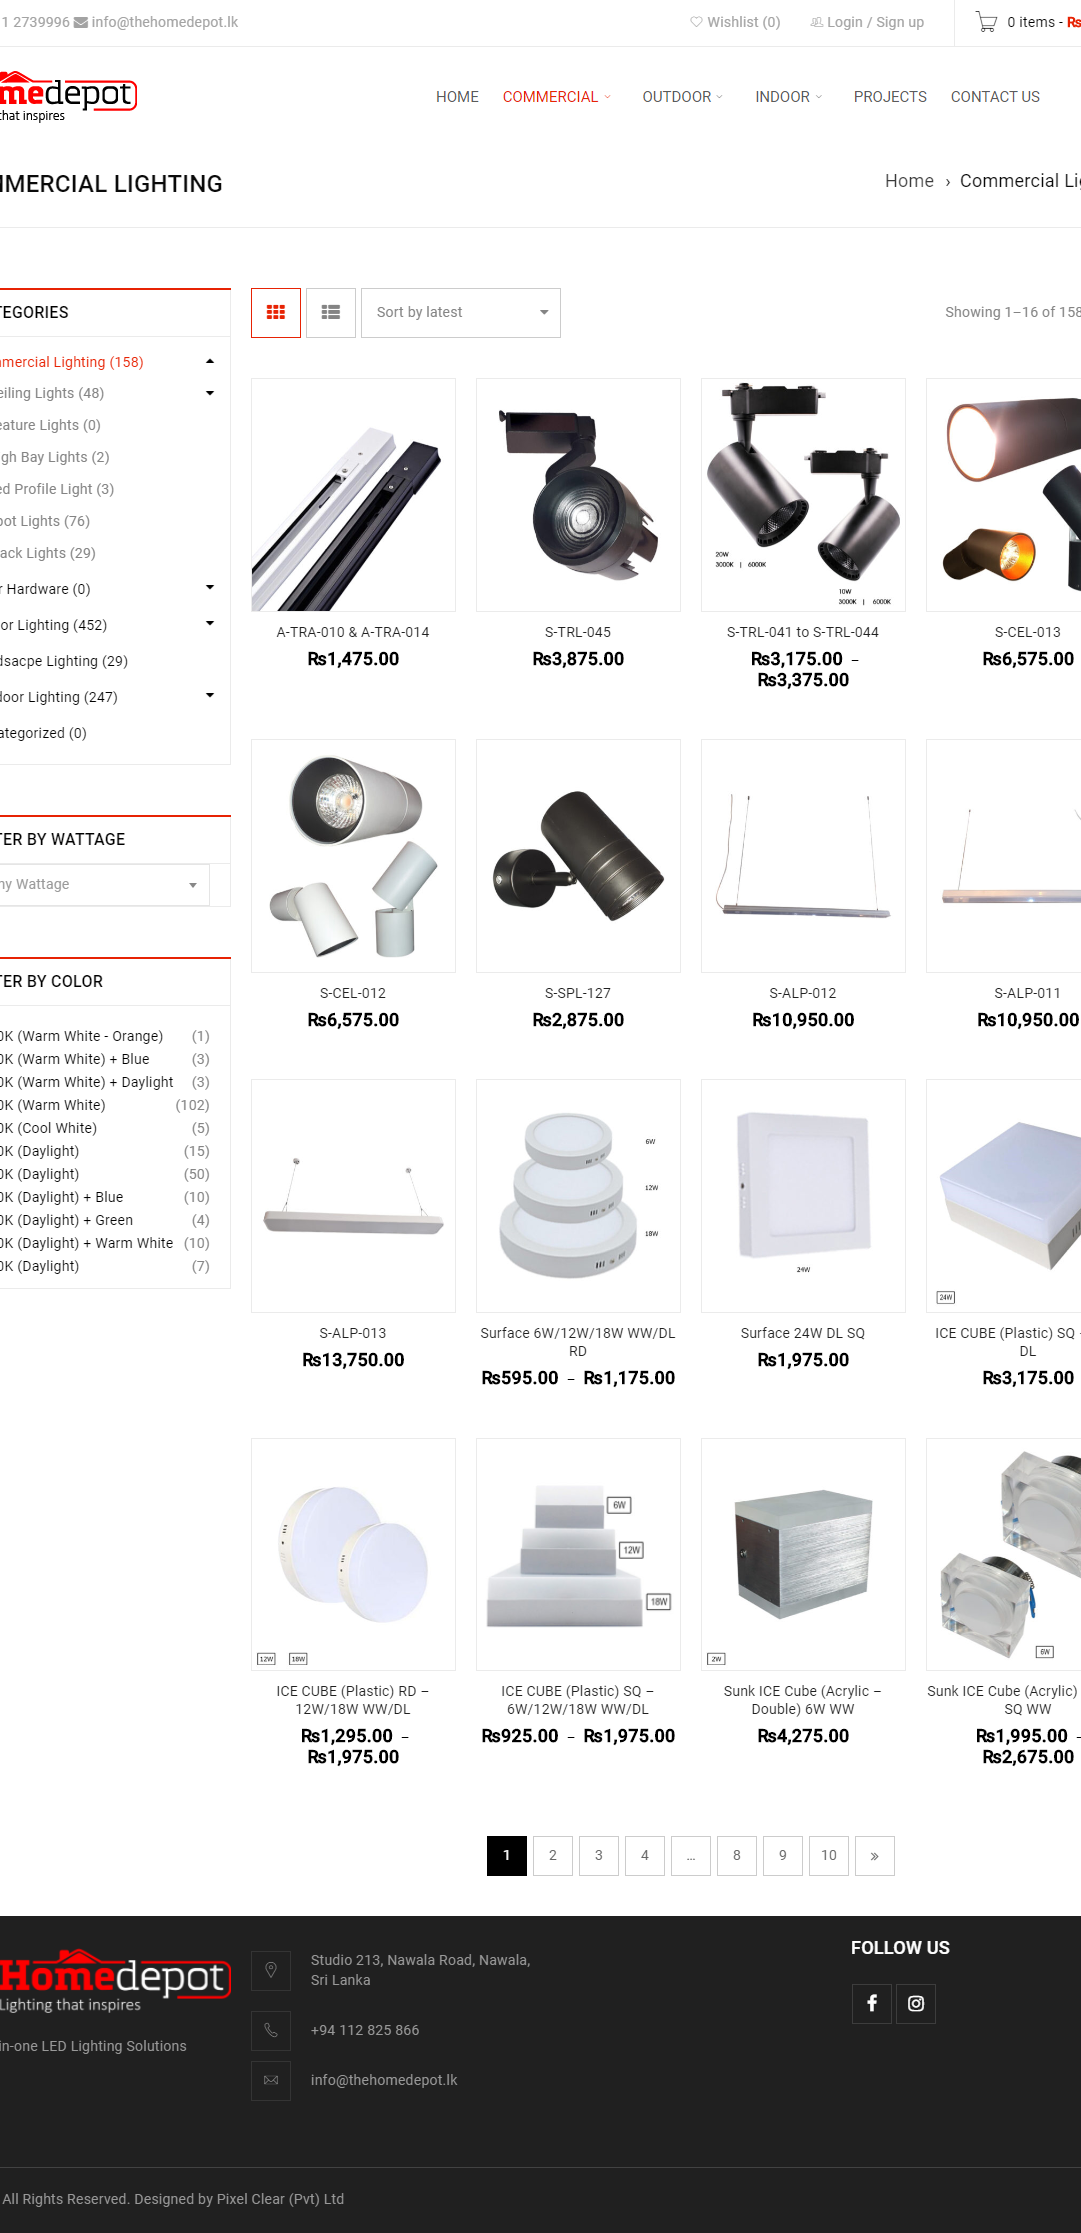 screencapture-thehomedepot-lk-product-category-commercial-lighting-1598943427638